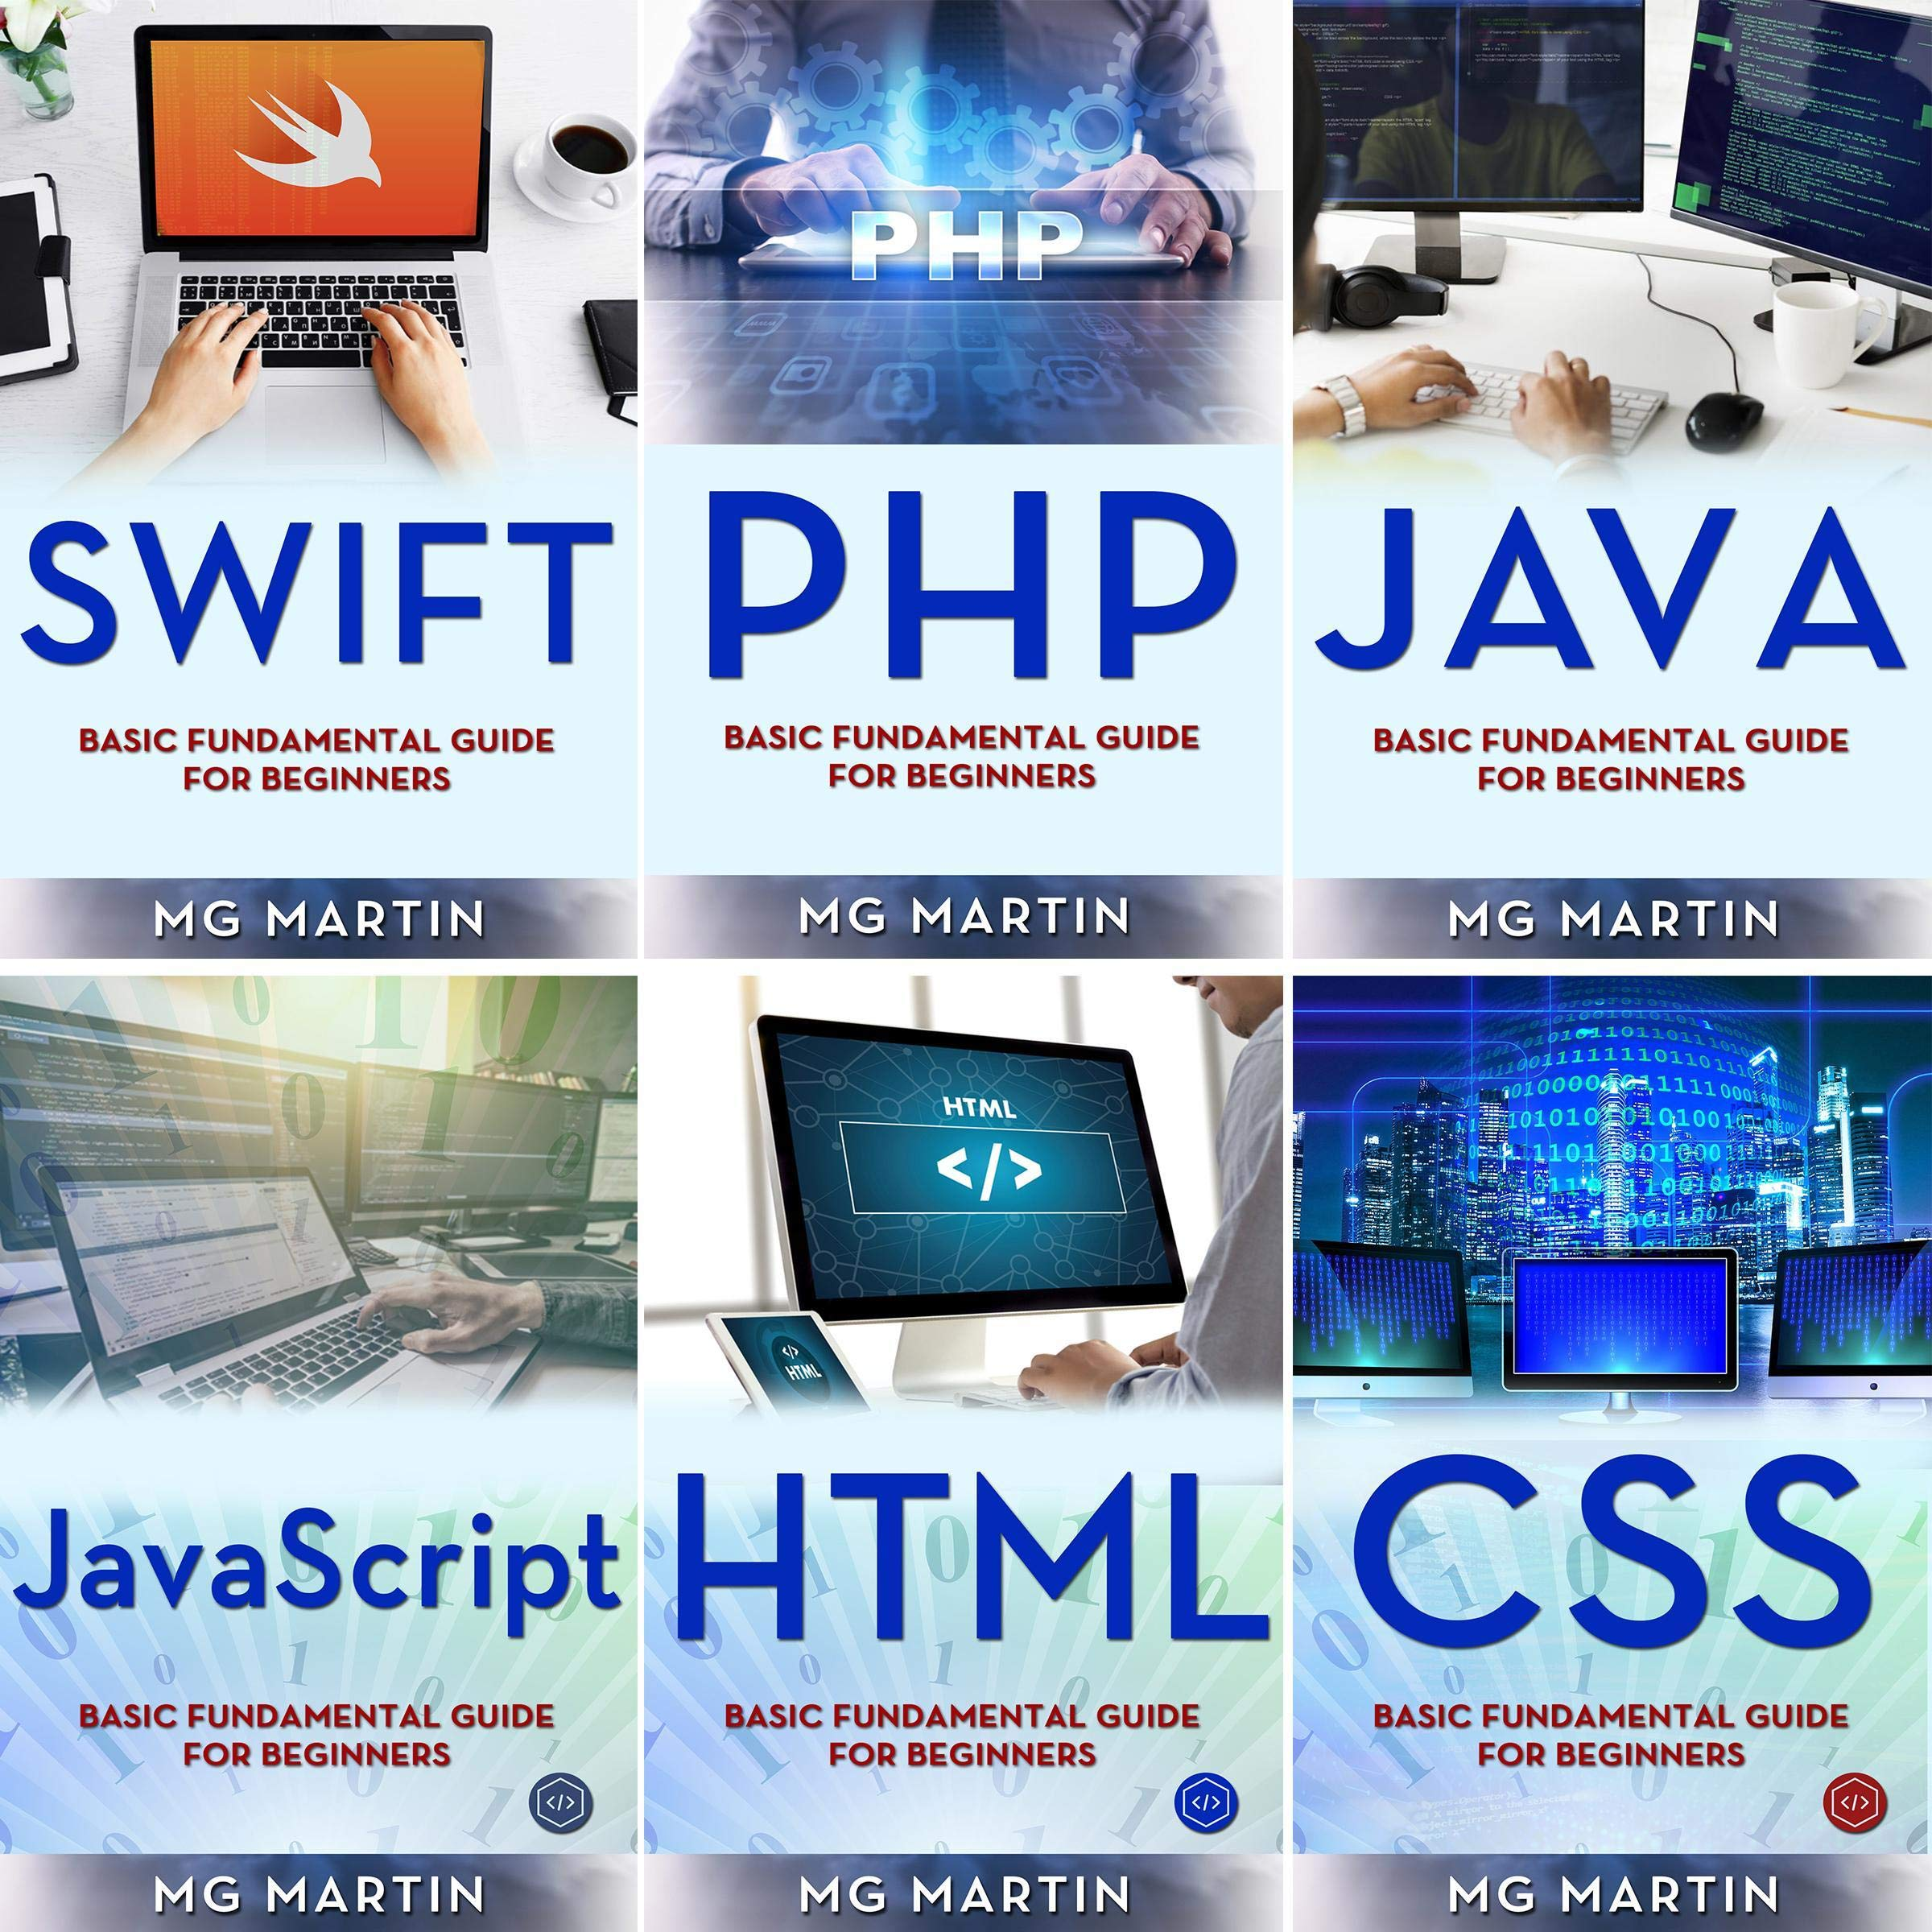 Programming for Beginners: 6 Books in 1 - Swift+PHP+Java+Javascript+Html+CSS: Basic Fundamental Guide for Beginners